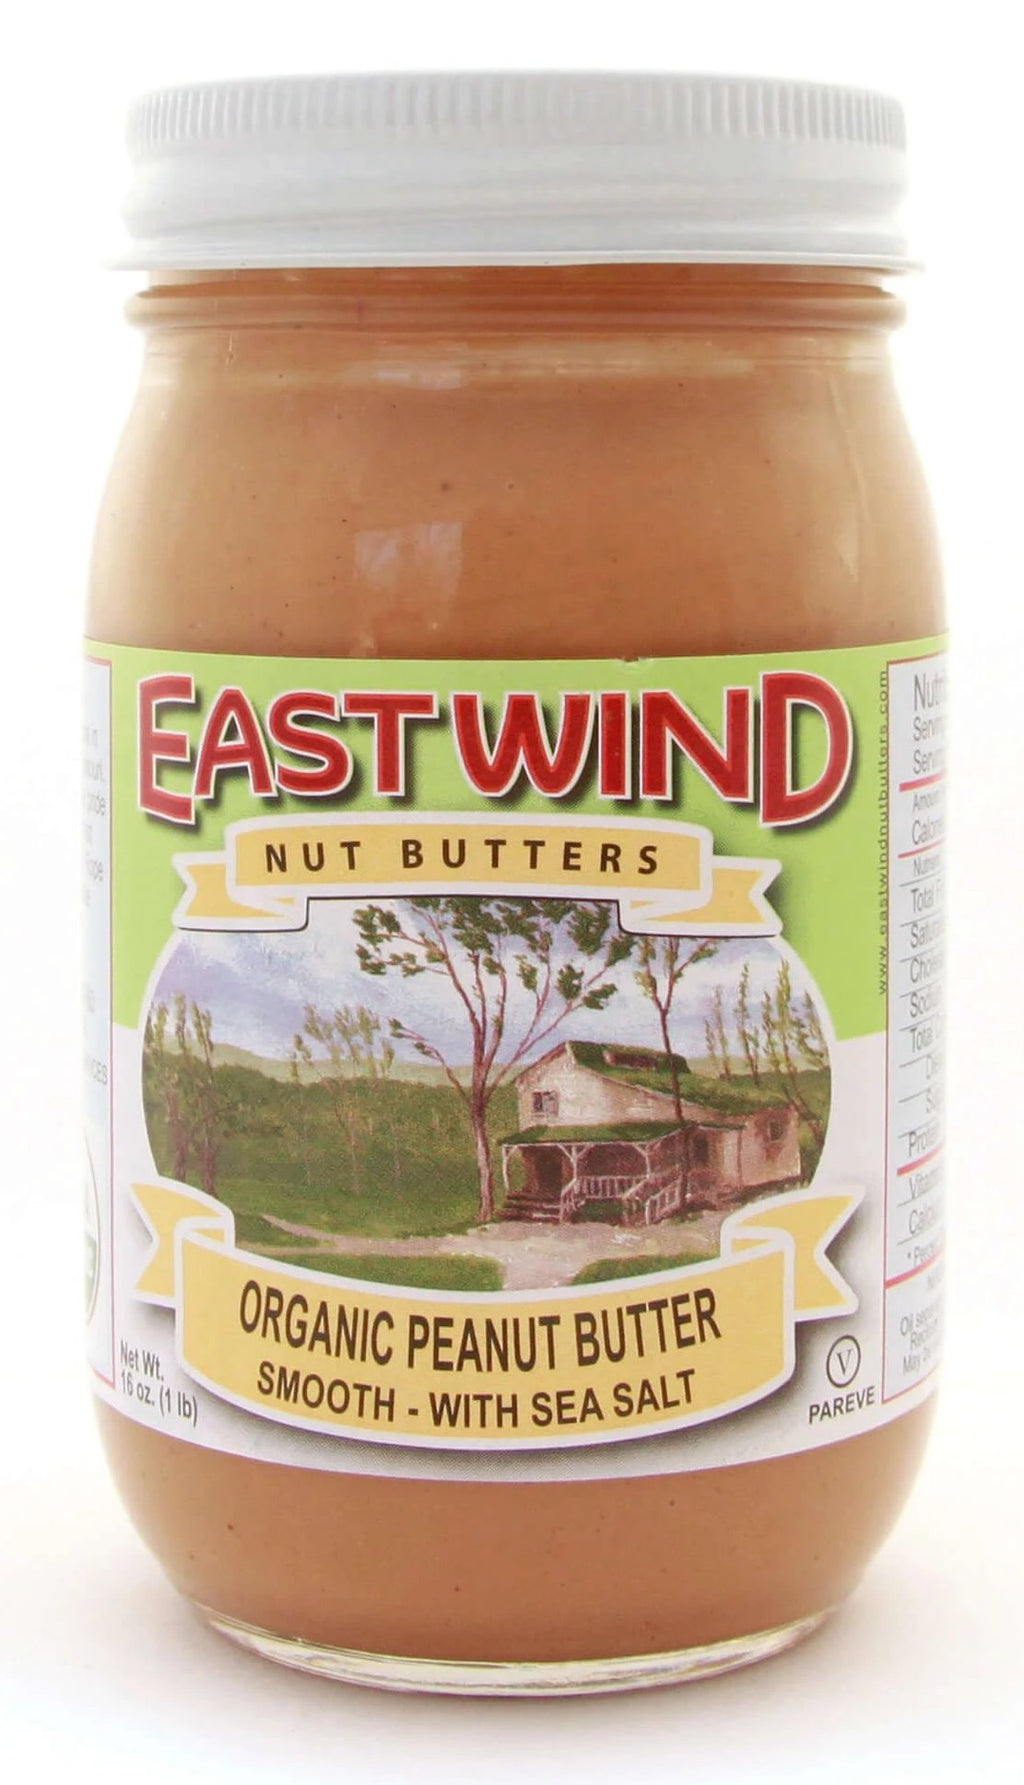 Organic Peanut Butter Smooth With Sea Salt 16 oz